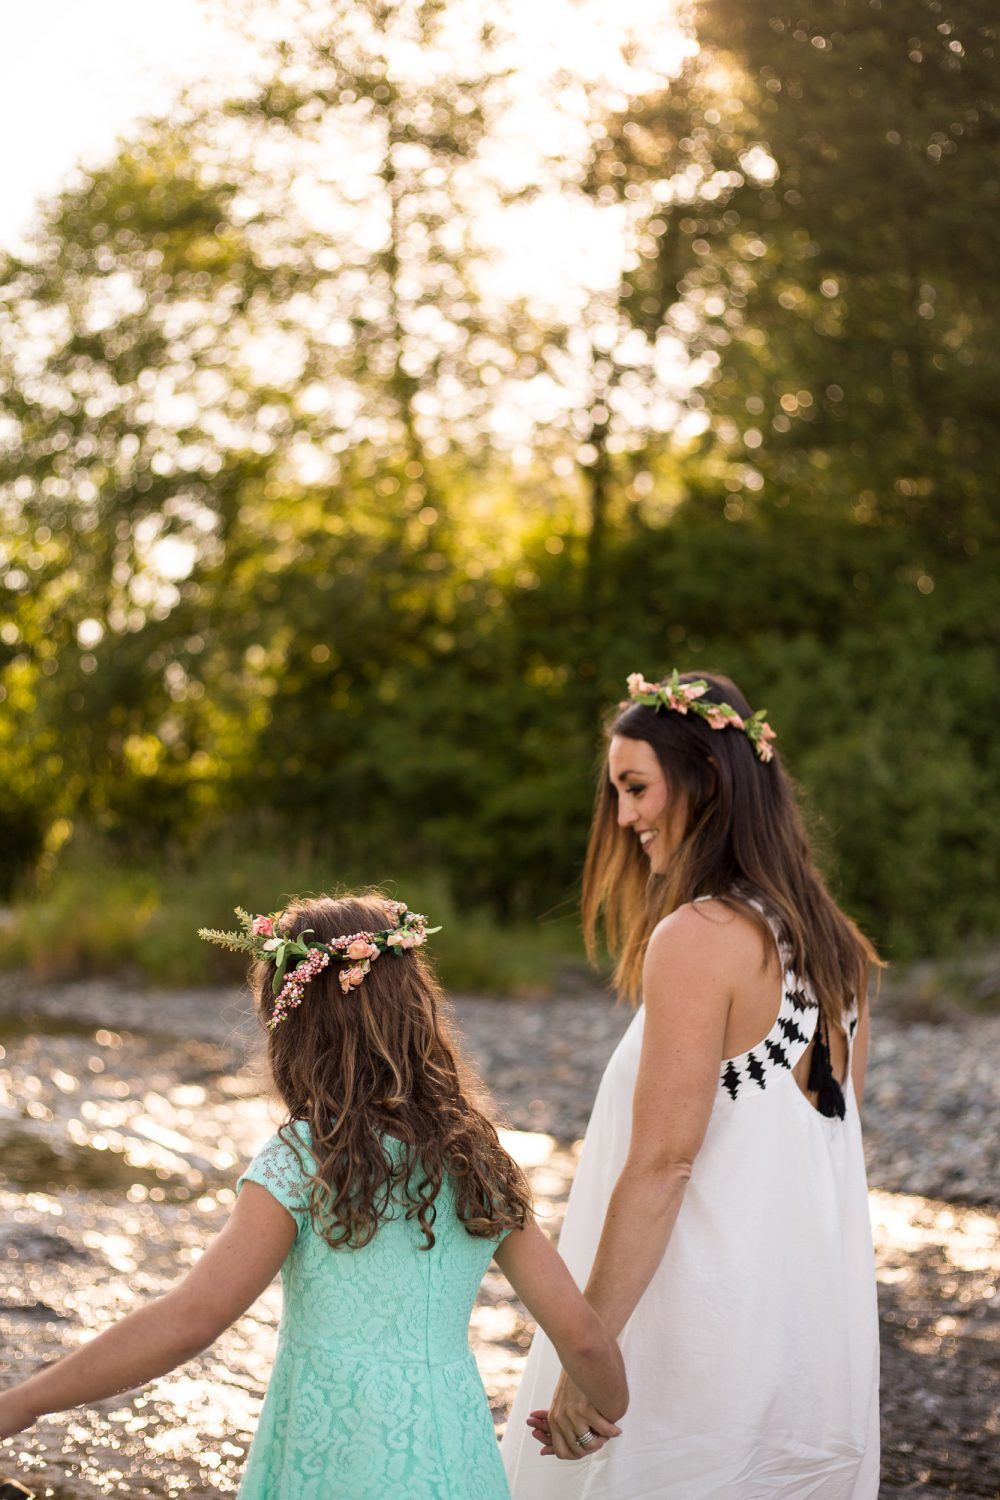 Sweet sunrise photo of mom and daughter with flower crowns.